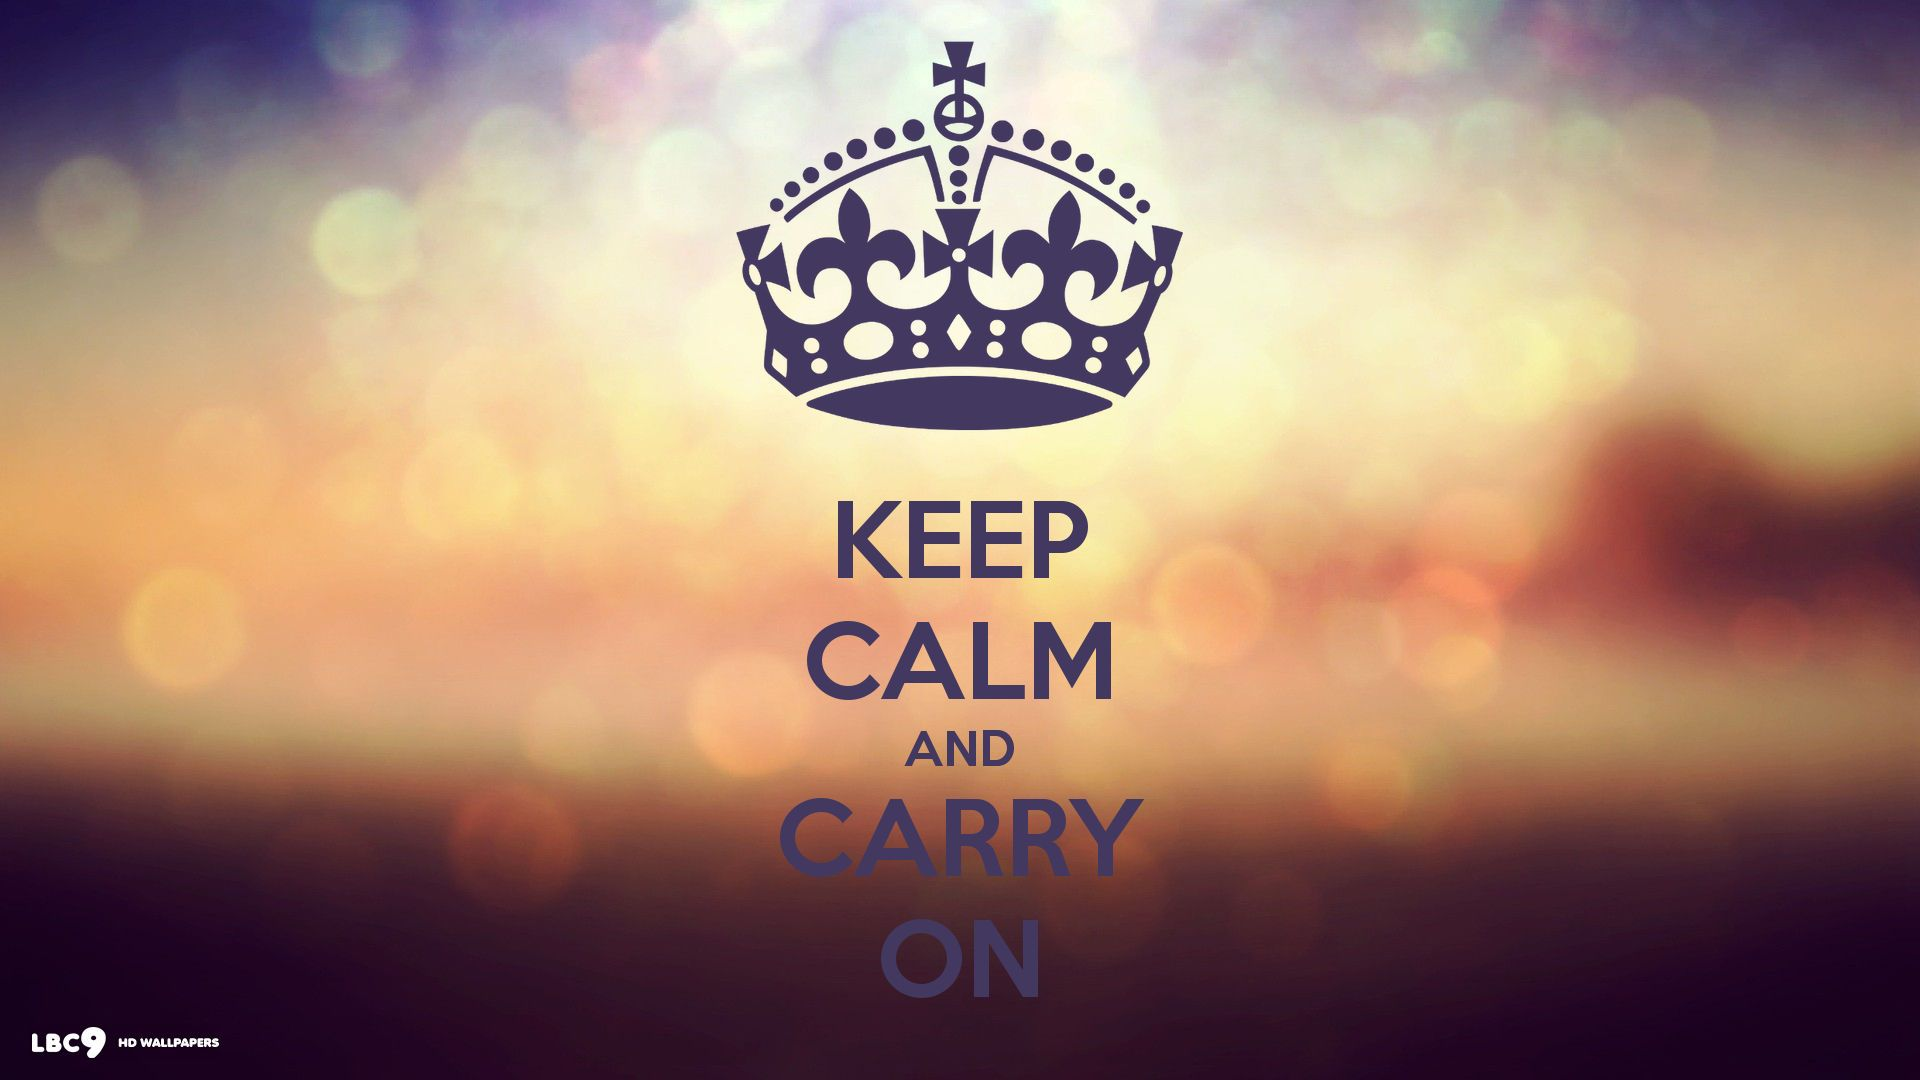 keep calm and carry on wallpapers and typography hd backgrounds ...